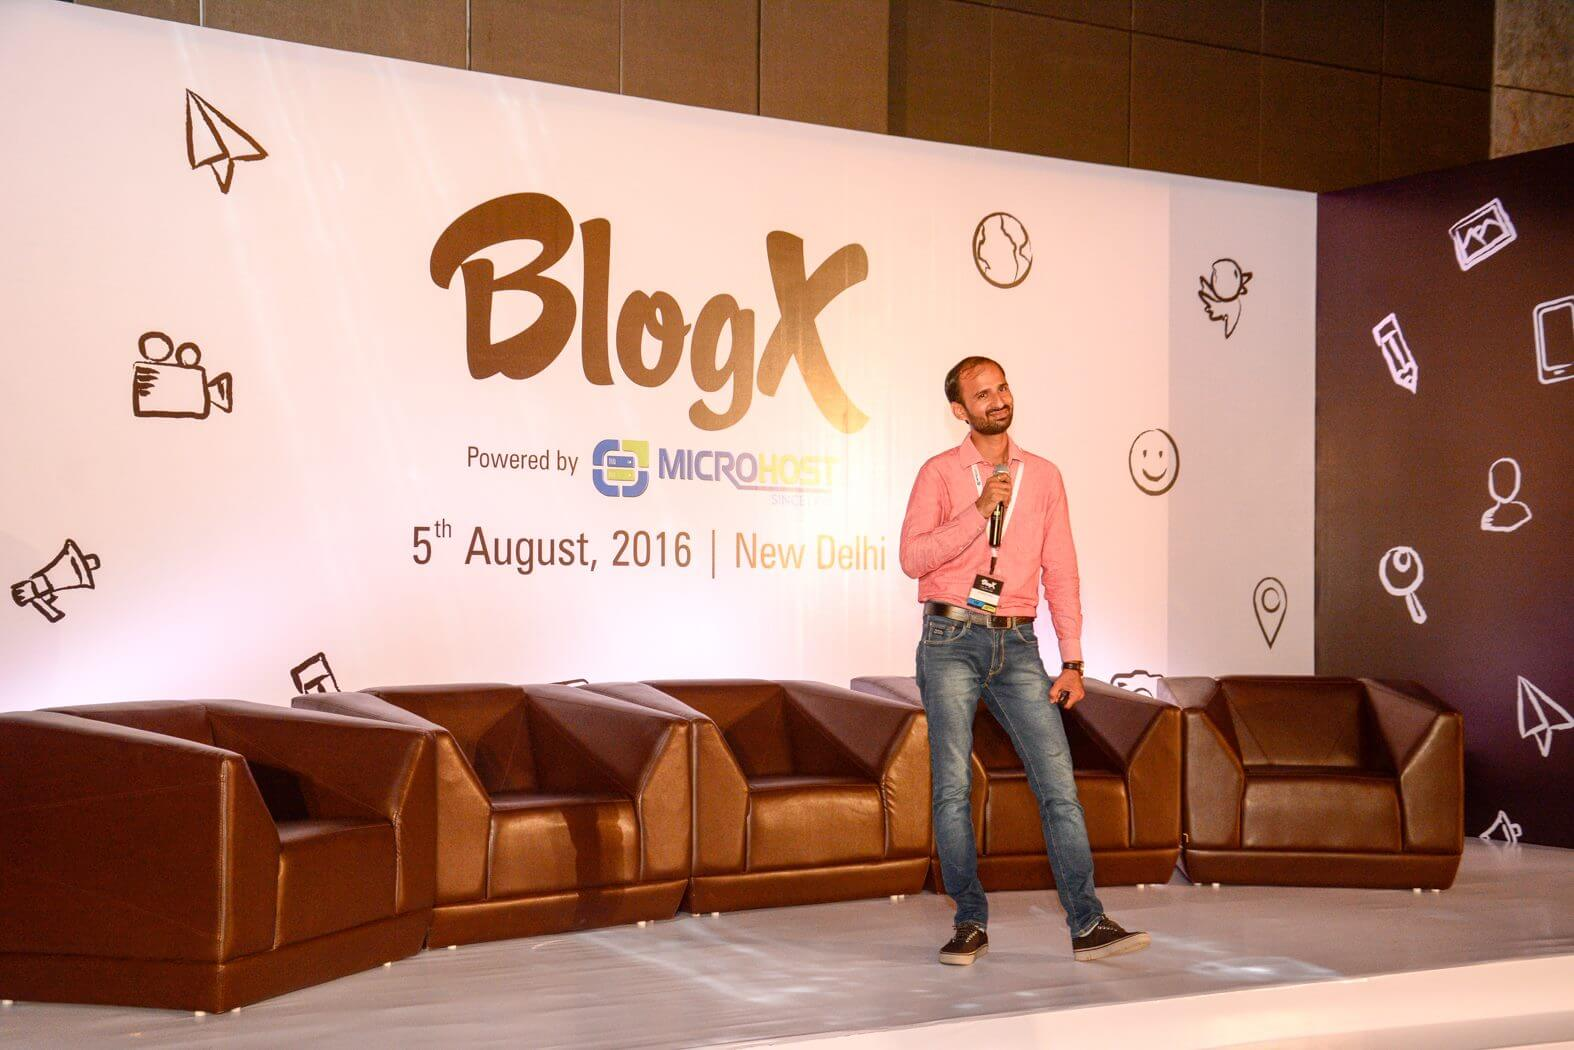 kulwant nagi at blogx